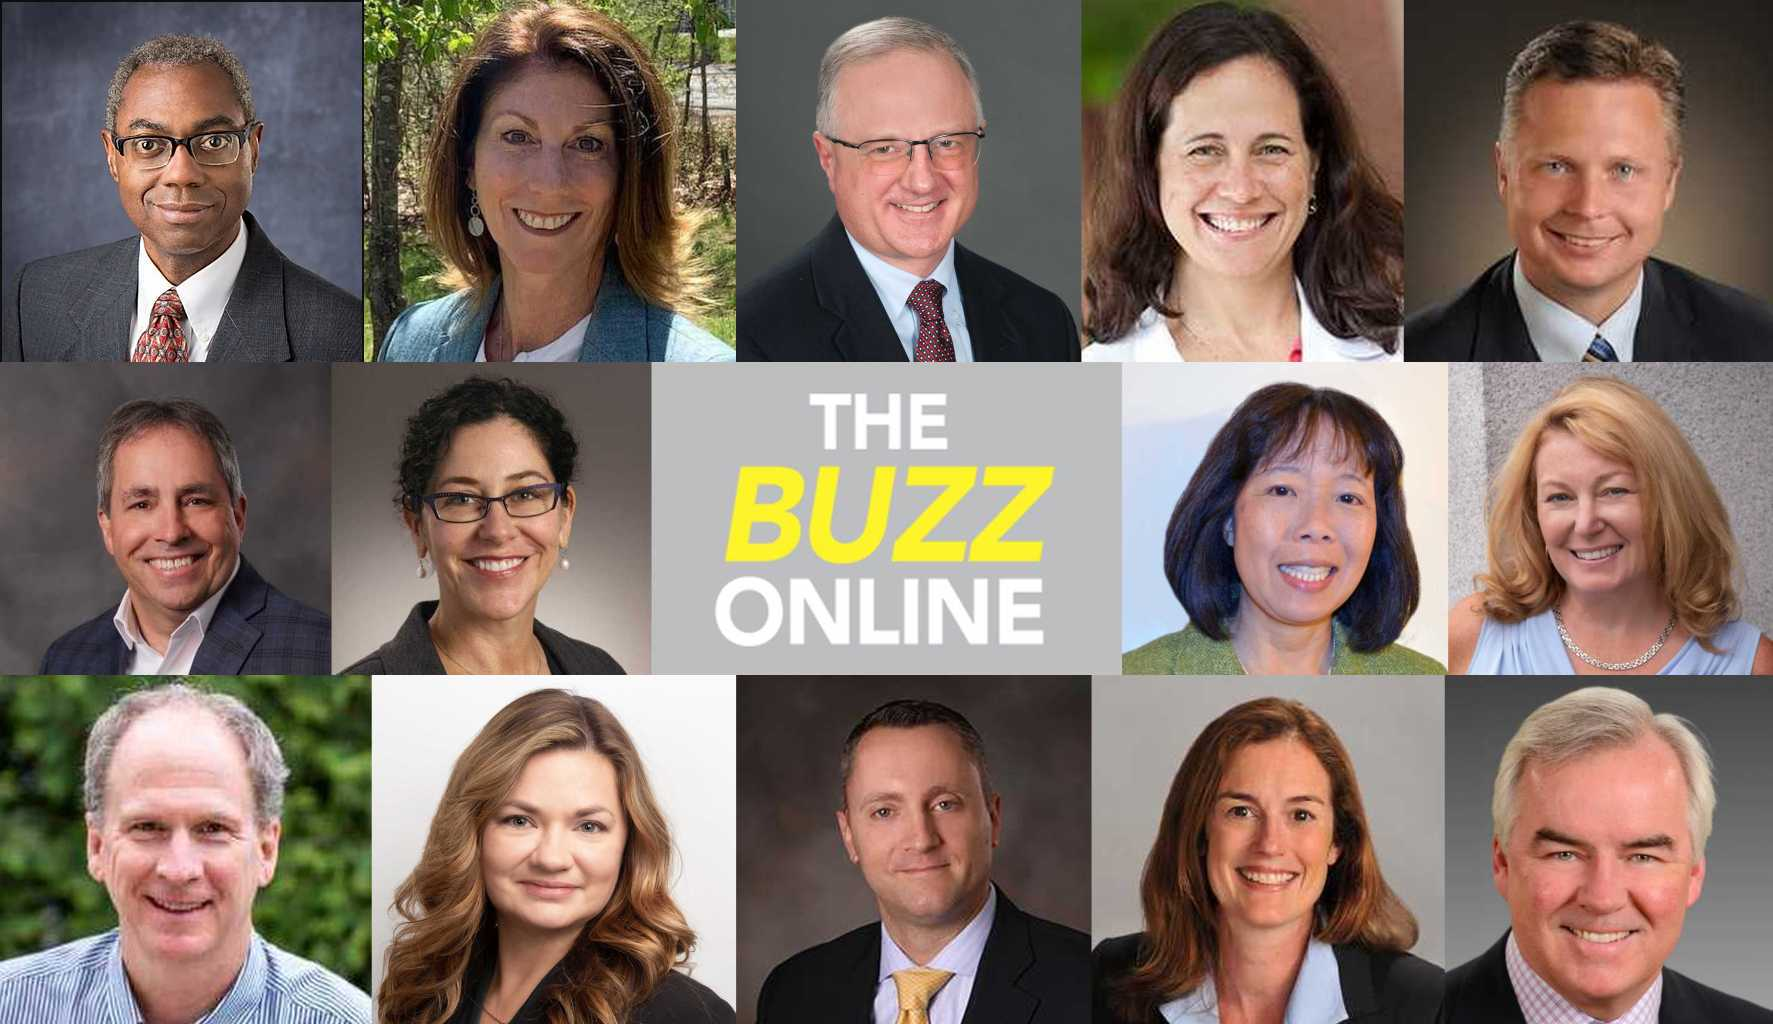 The Buzz Online